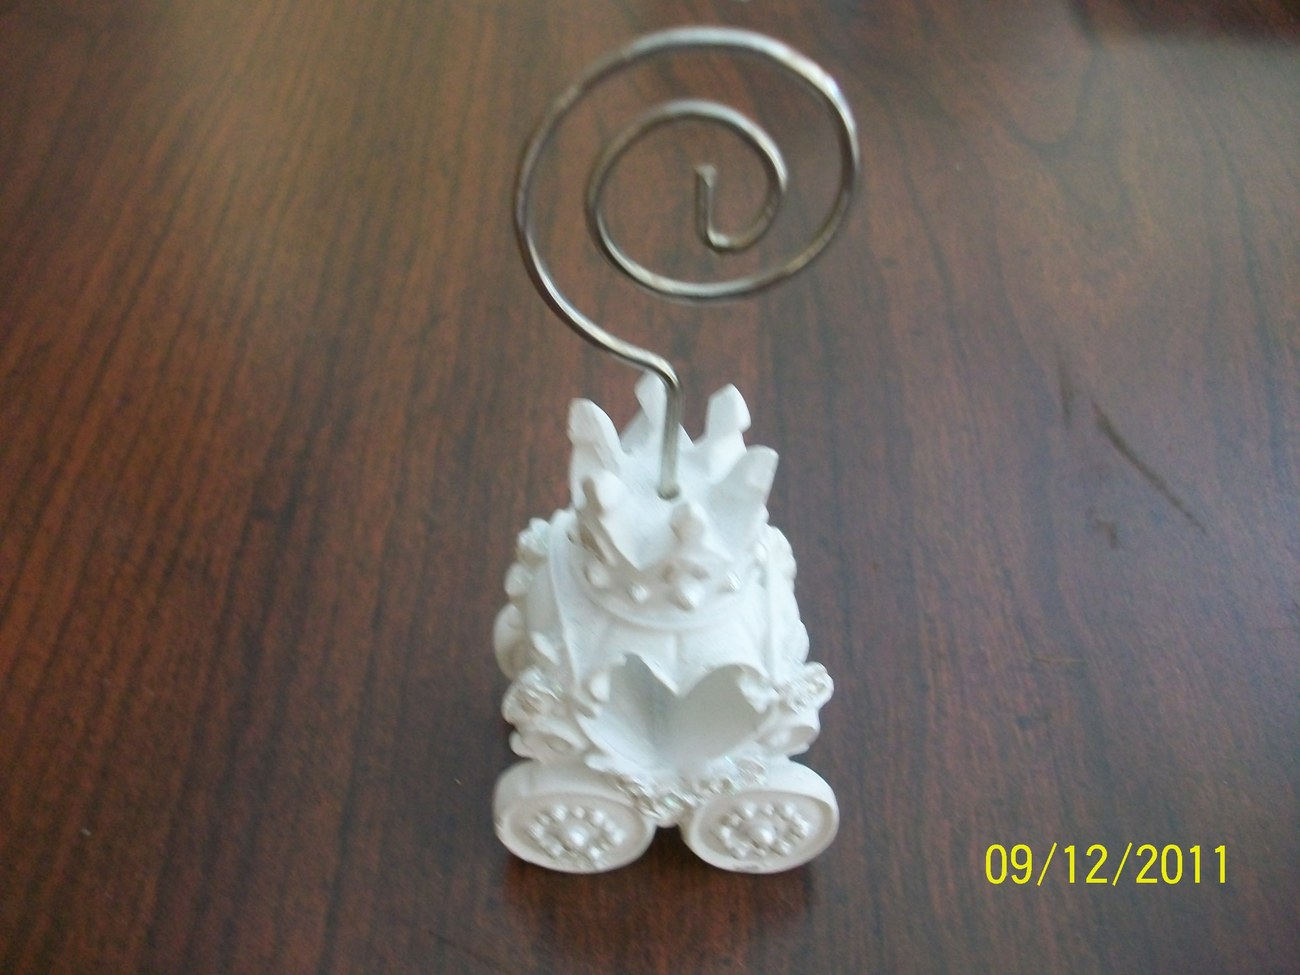 Royal coach design place card holder for a picture or note